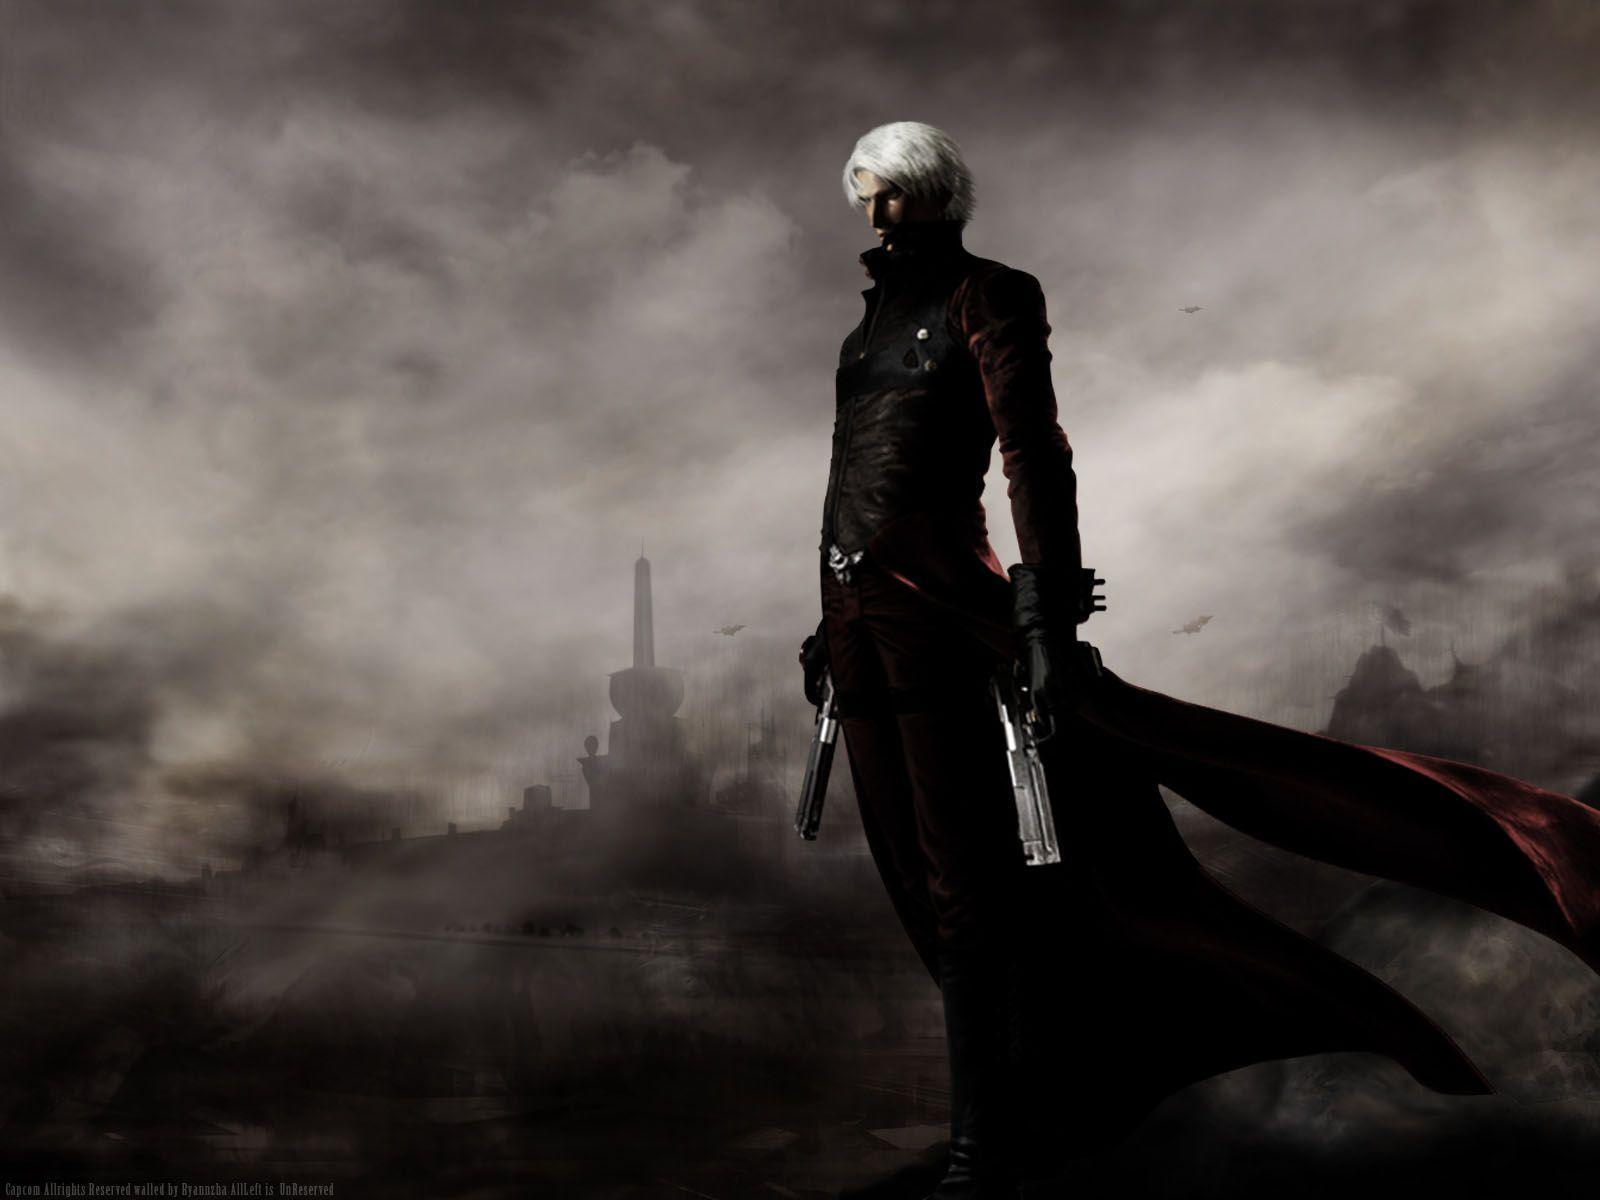 Devil May Cry Dante Wallpaper: Dante Devil May Cry Wallpapers